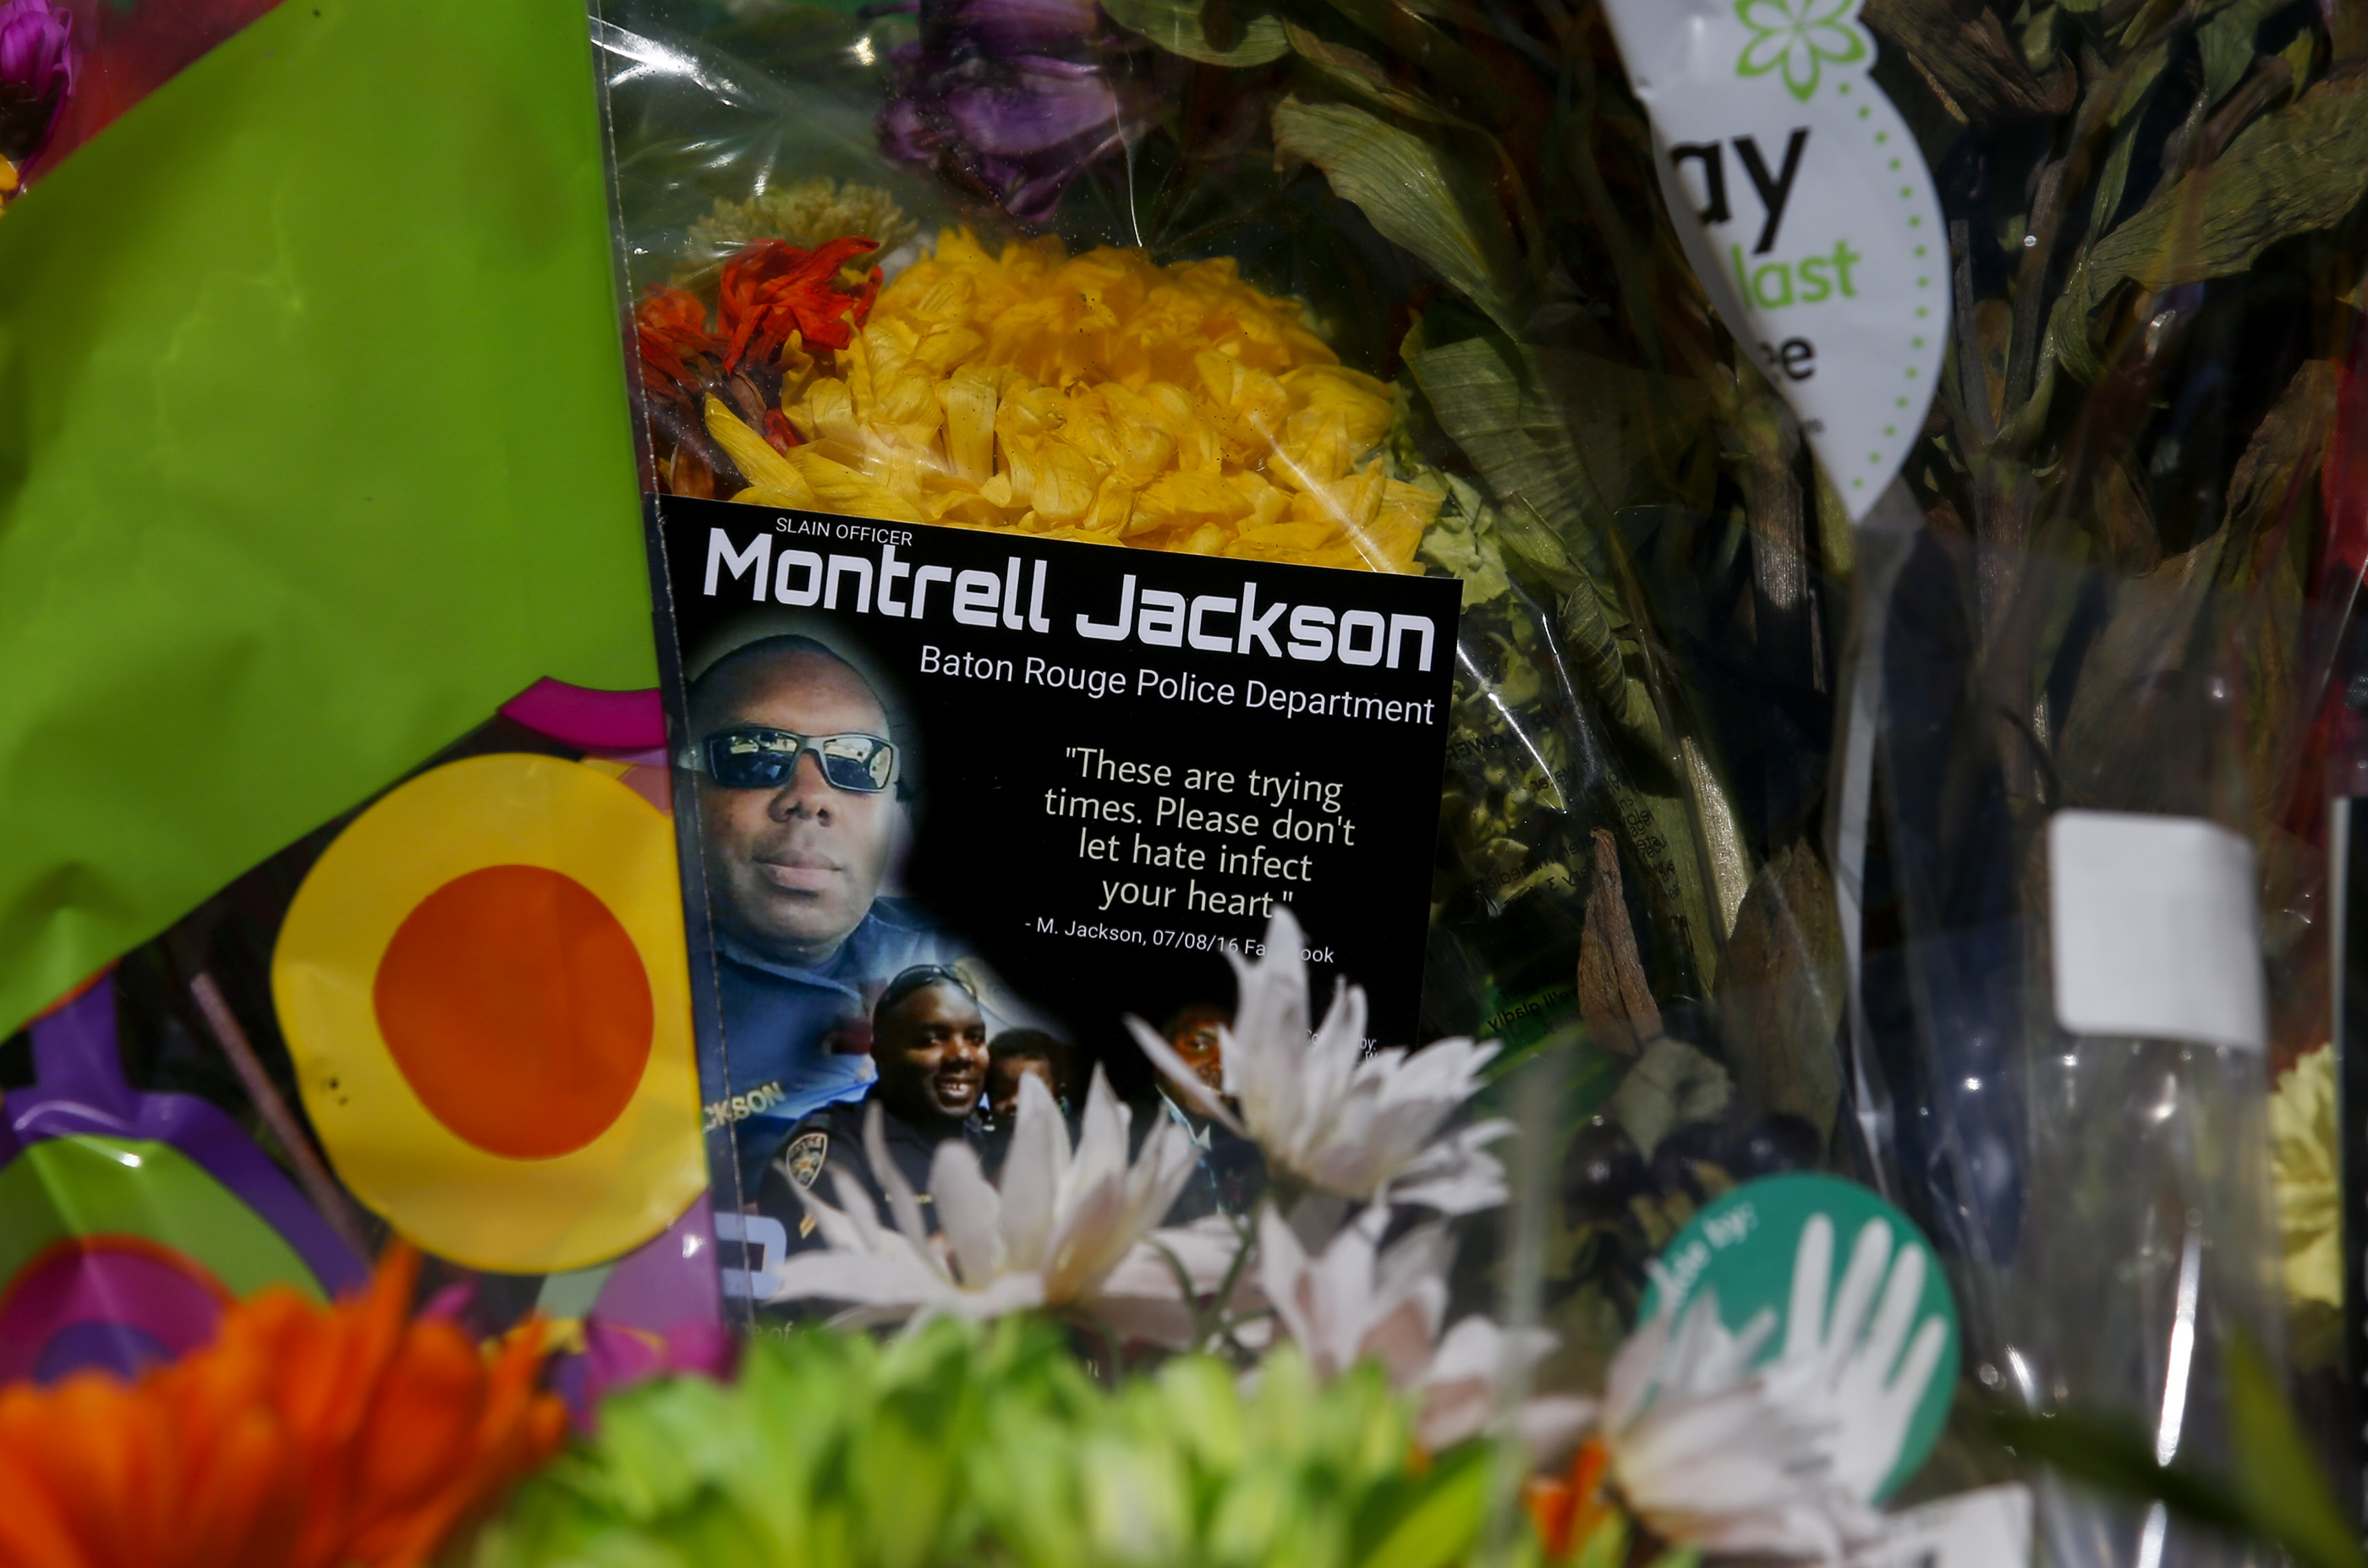 A photo card of one of the three slain Baton Rouge police officers, Montrell Jackson, is nestled among the flowers left by the public at the roadside memorial on July 19, 2016 in Baton Rouge, Louisiana.